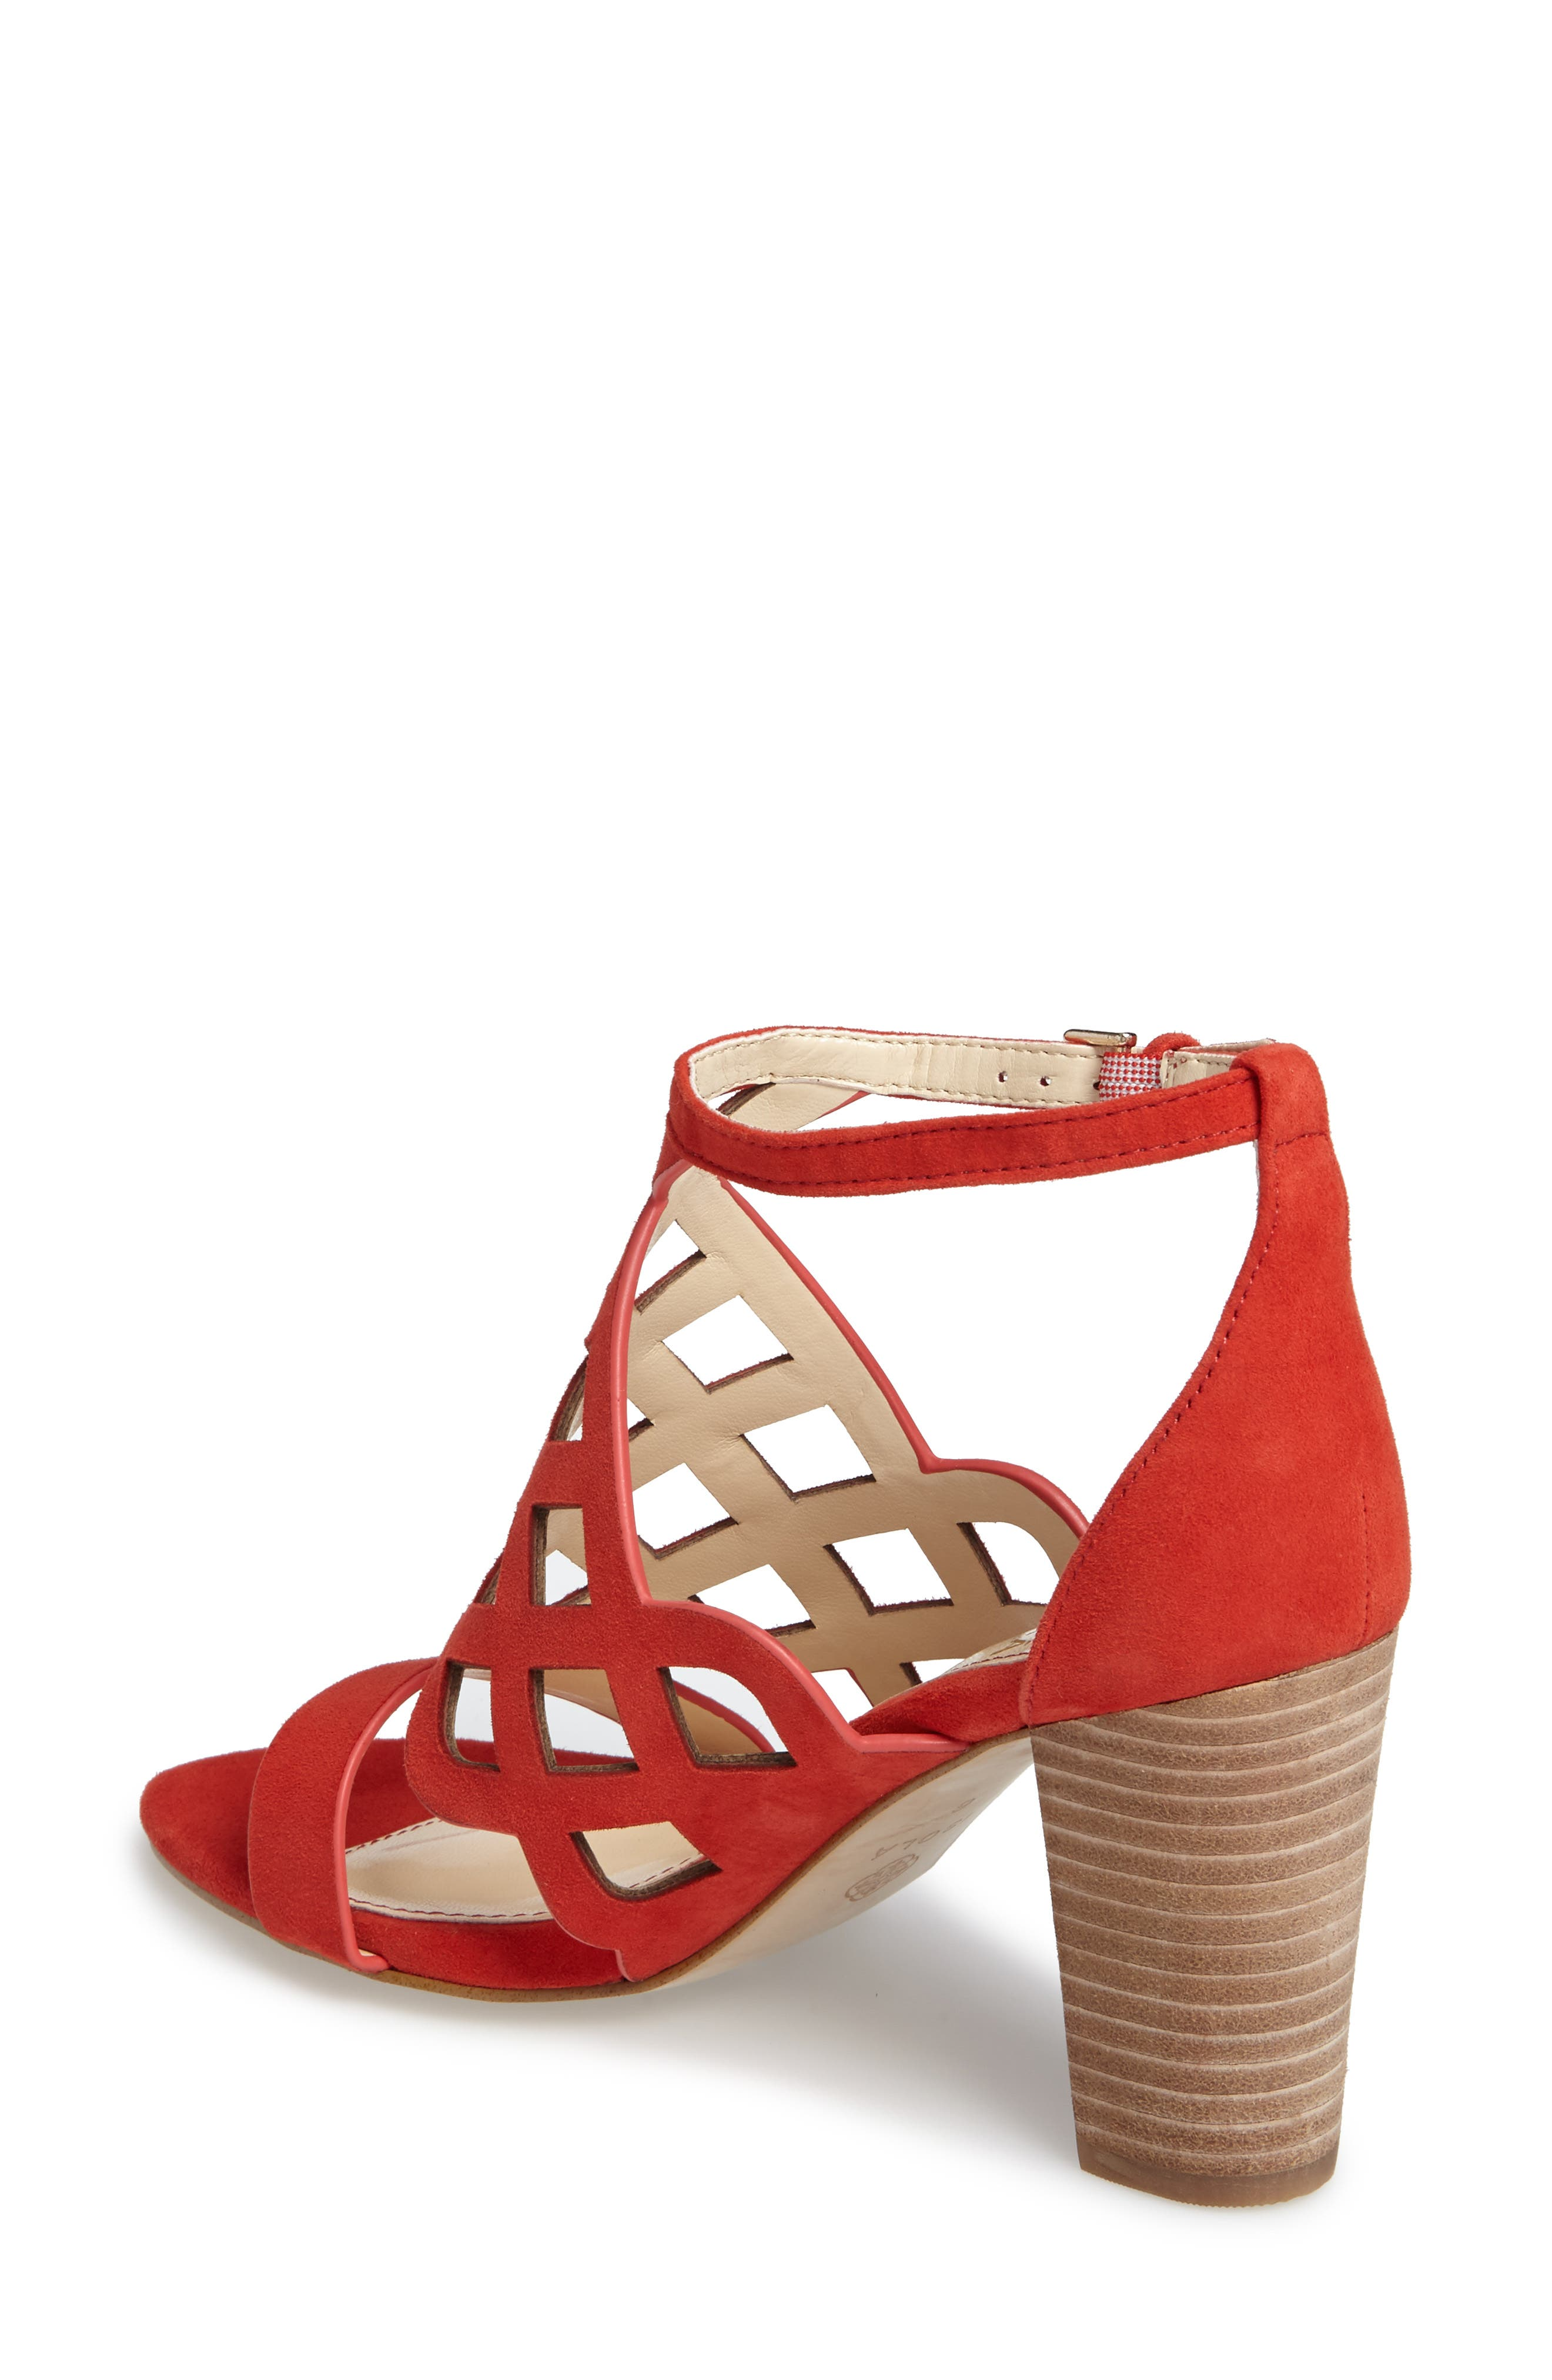 Despina Cutout Ankle Strap Sandal,                             Alternate thumbnail 3, color,                             LIPSTICK RED SUEDE